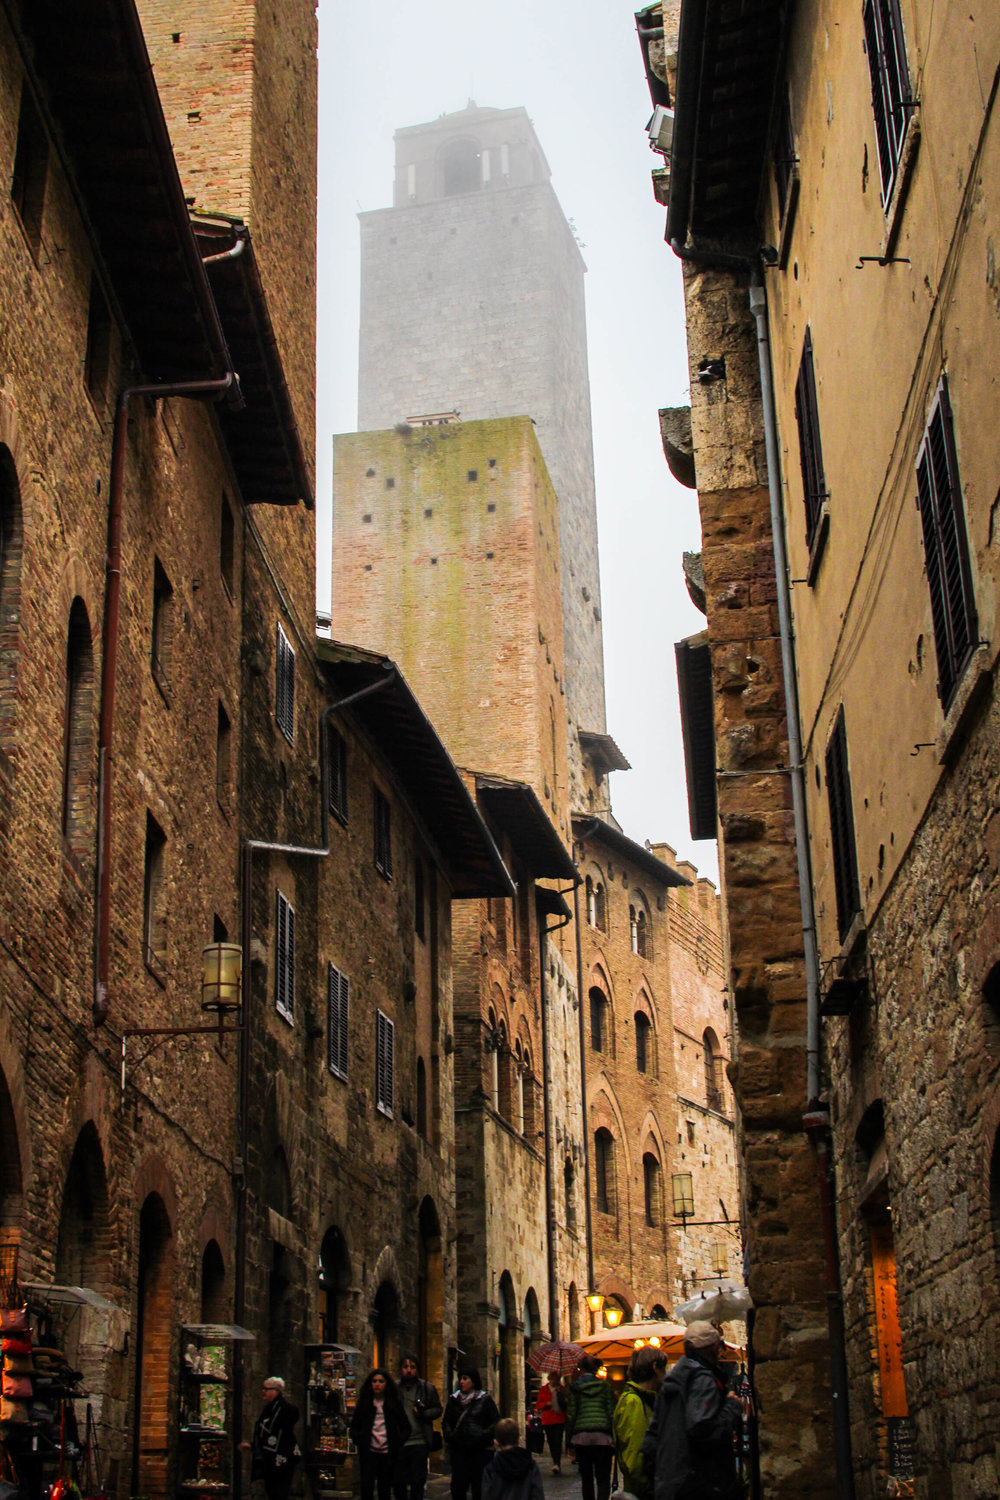 The beauty of San Gimignano is all around